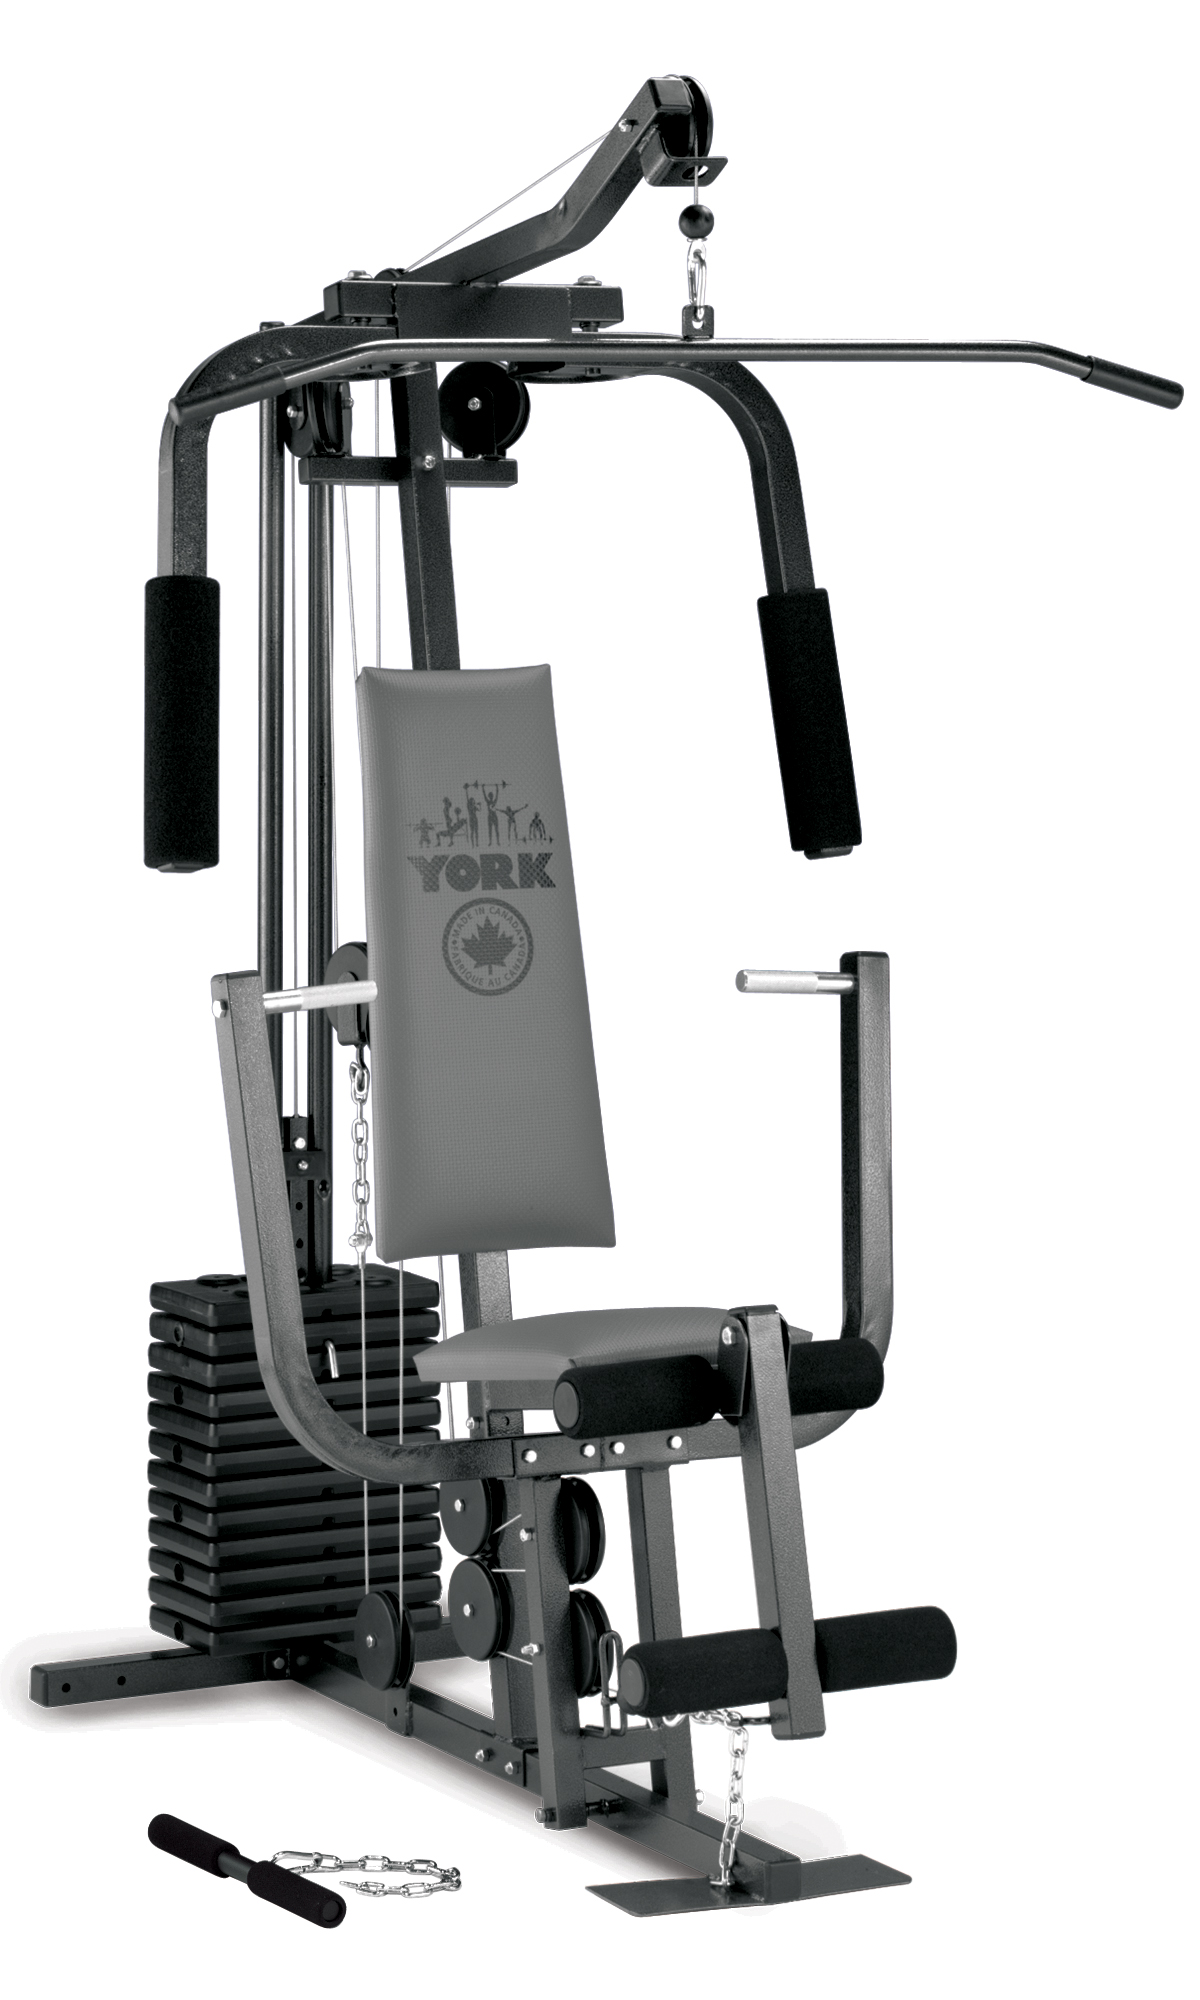 York multi gym home equipment machines